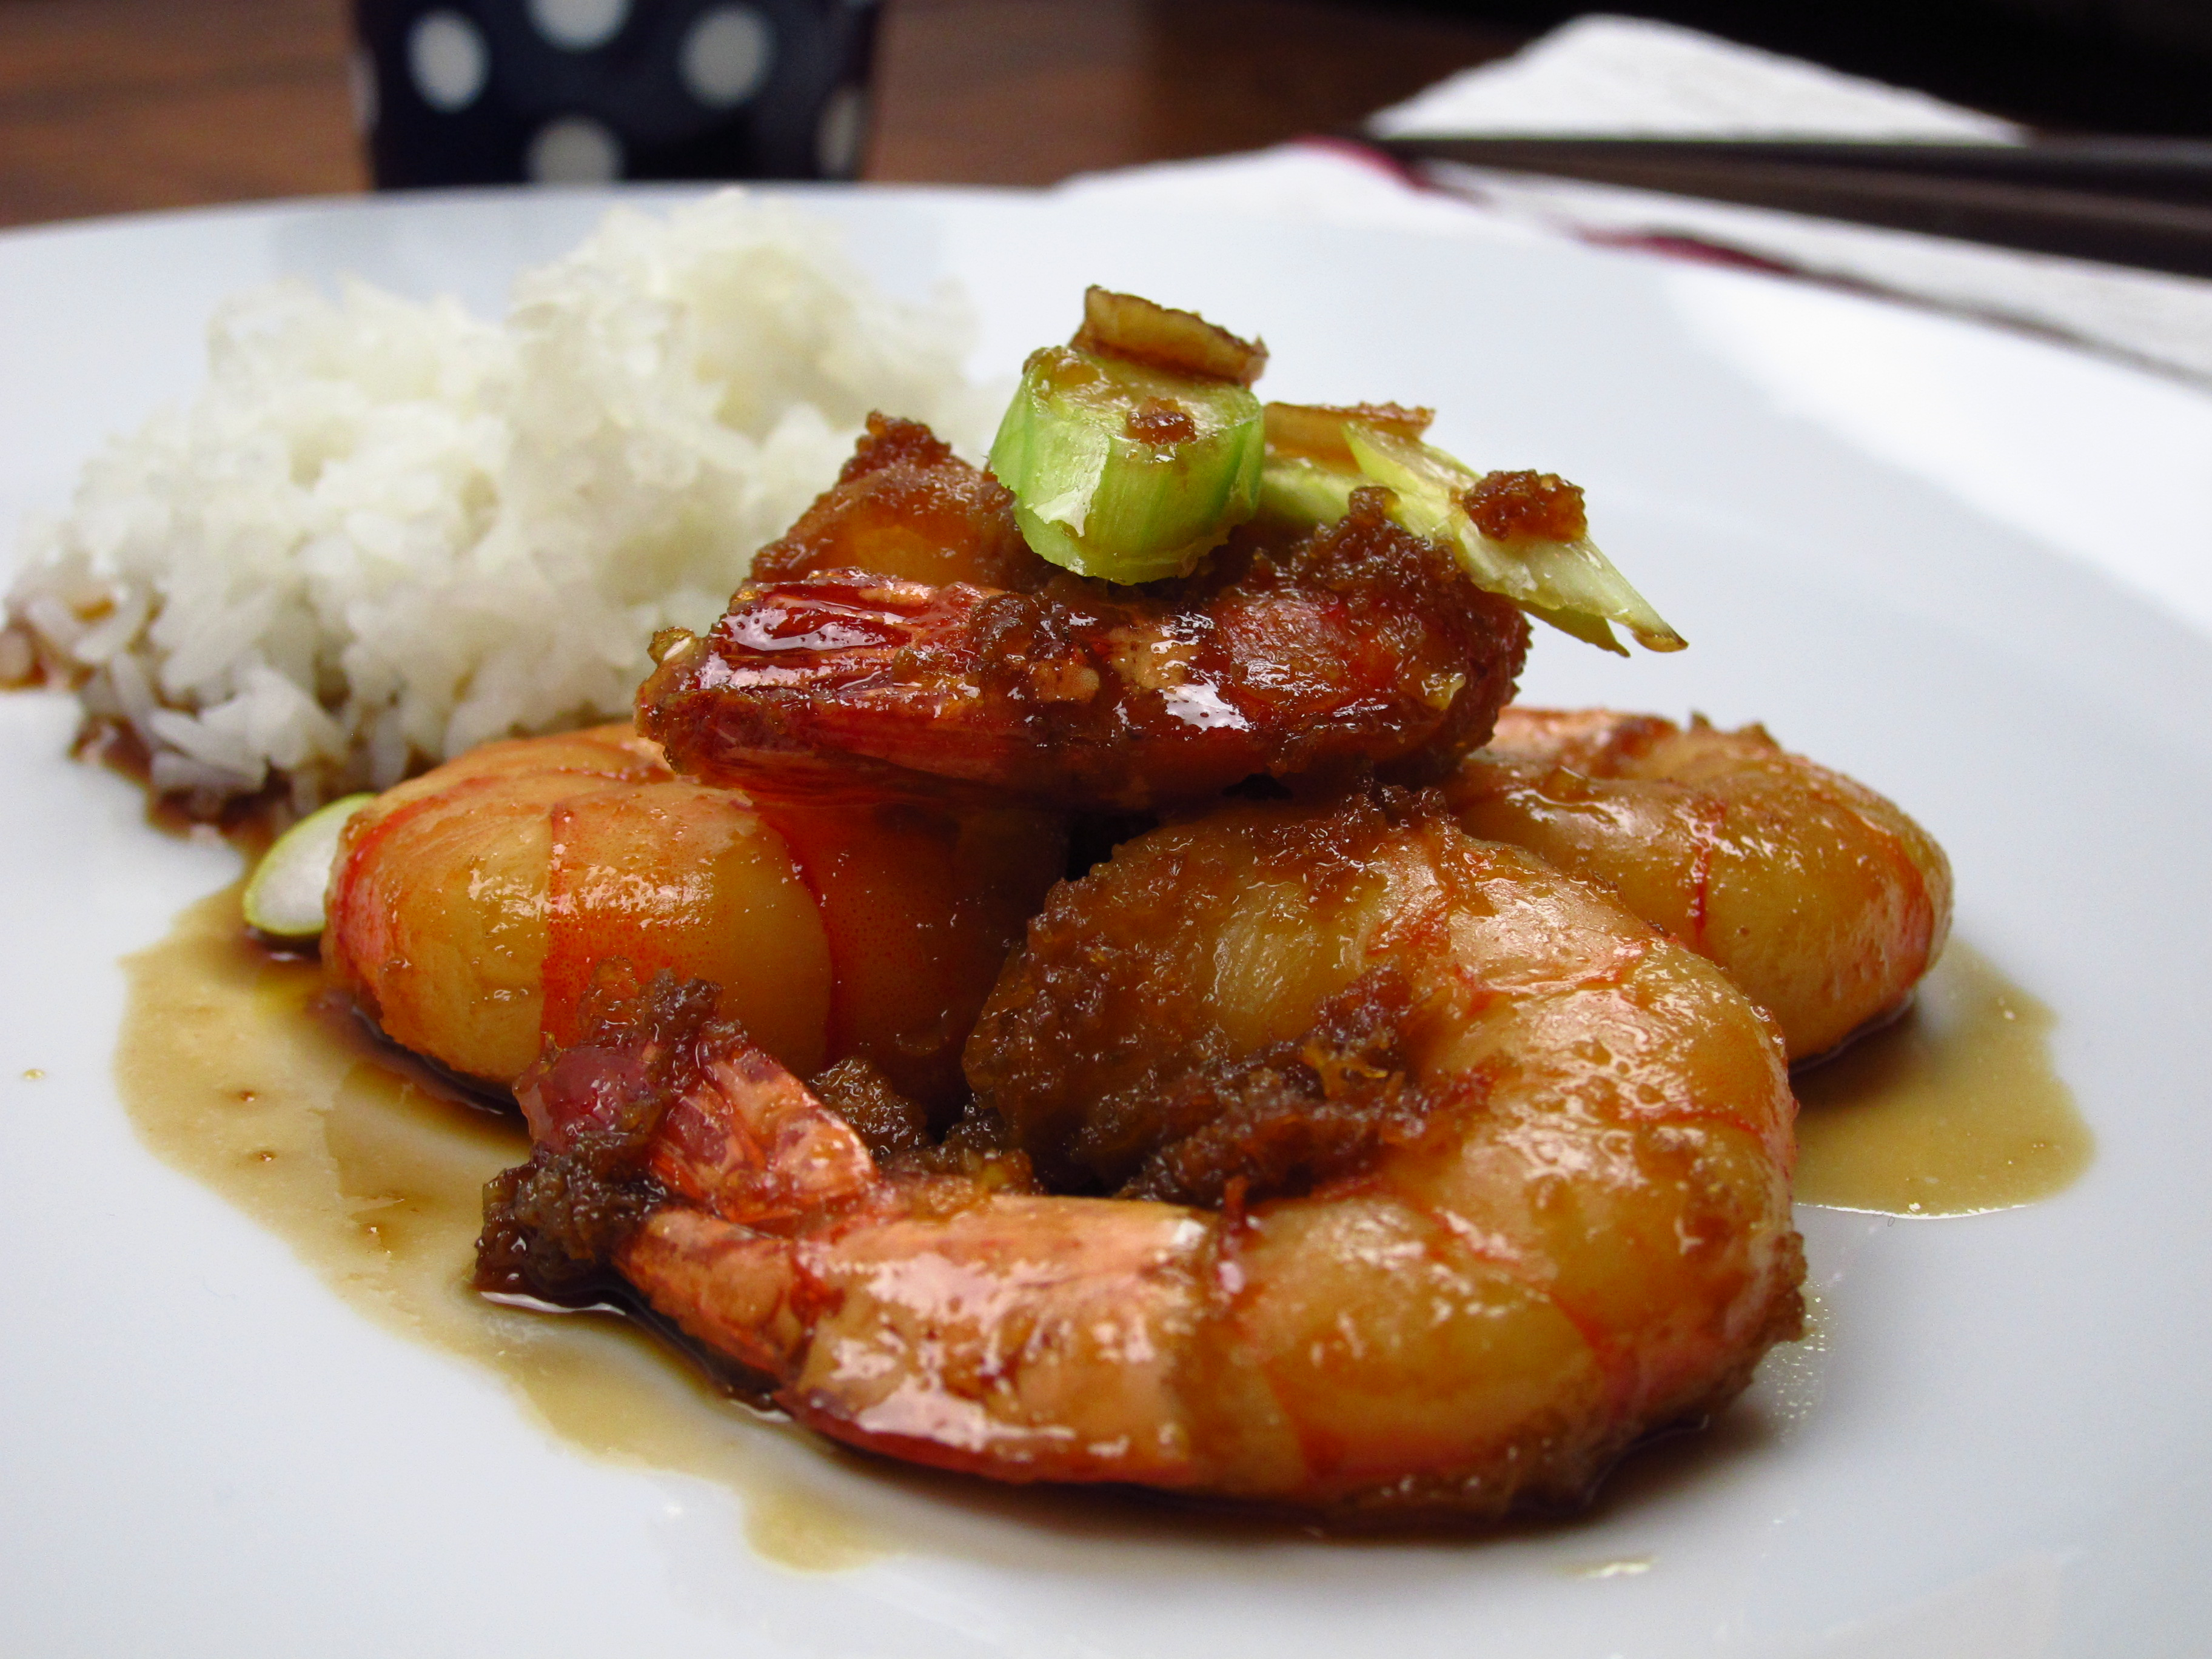 29.Blog_Crispy tiger prawns with honey and garlic sauce is a new favourite